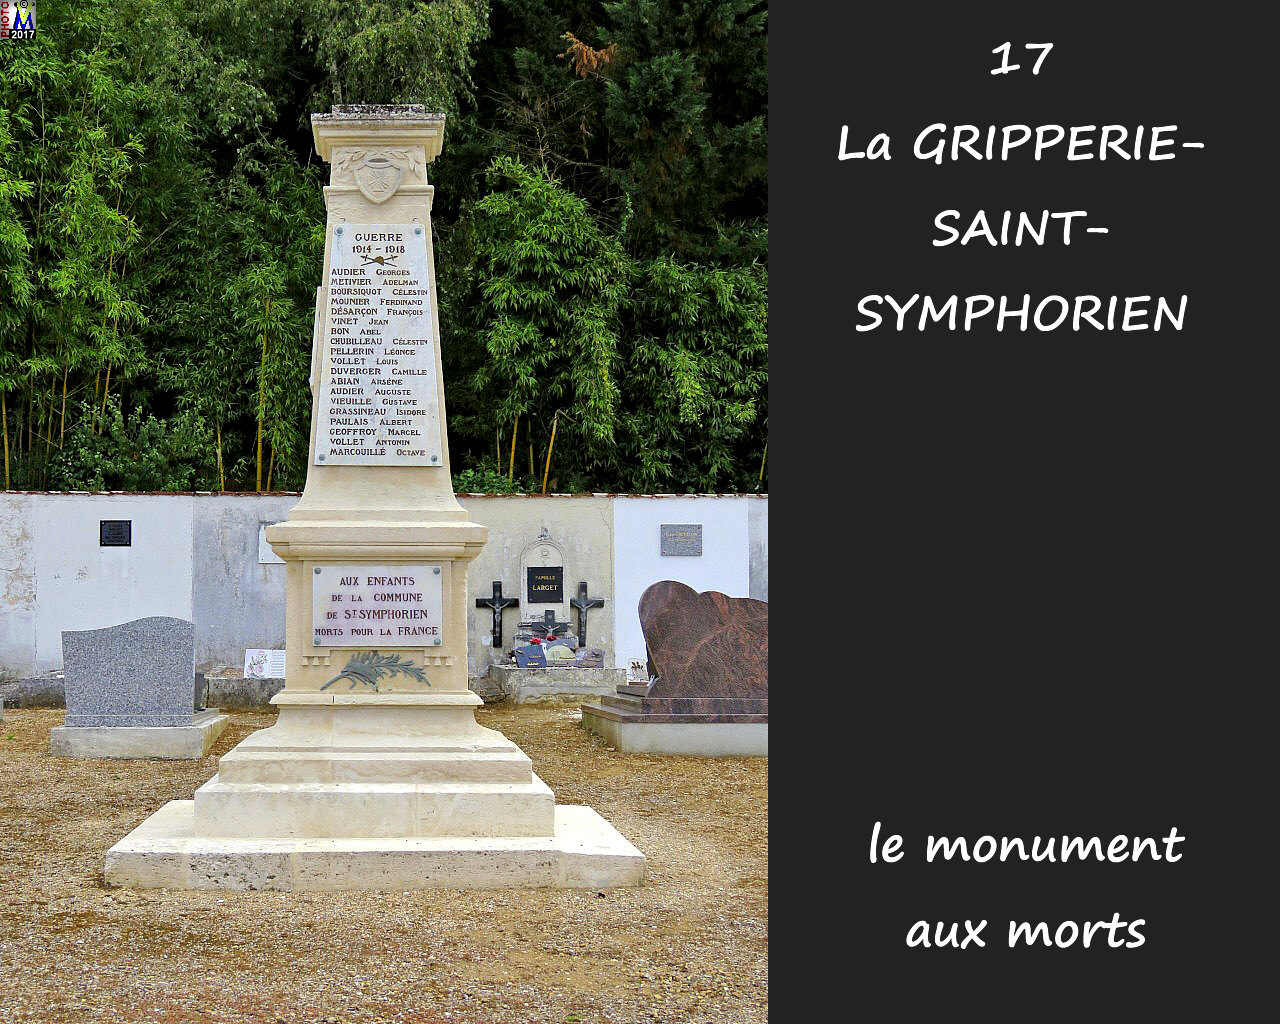 17GRIPPERIE-ST-SYM_morts_1000.jpg